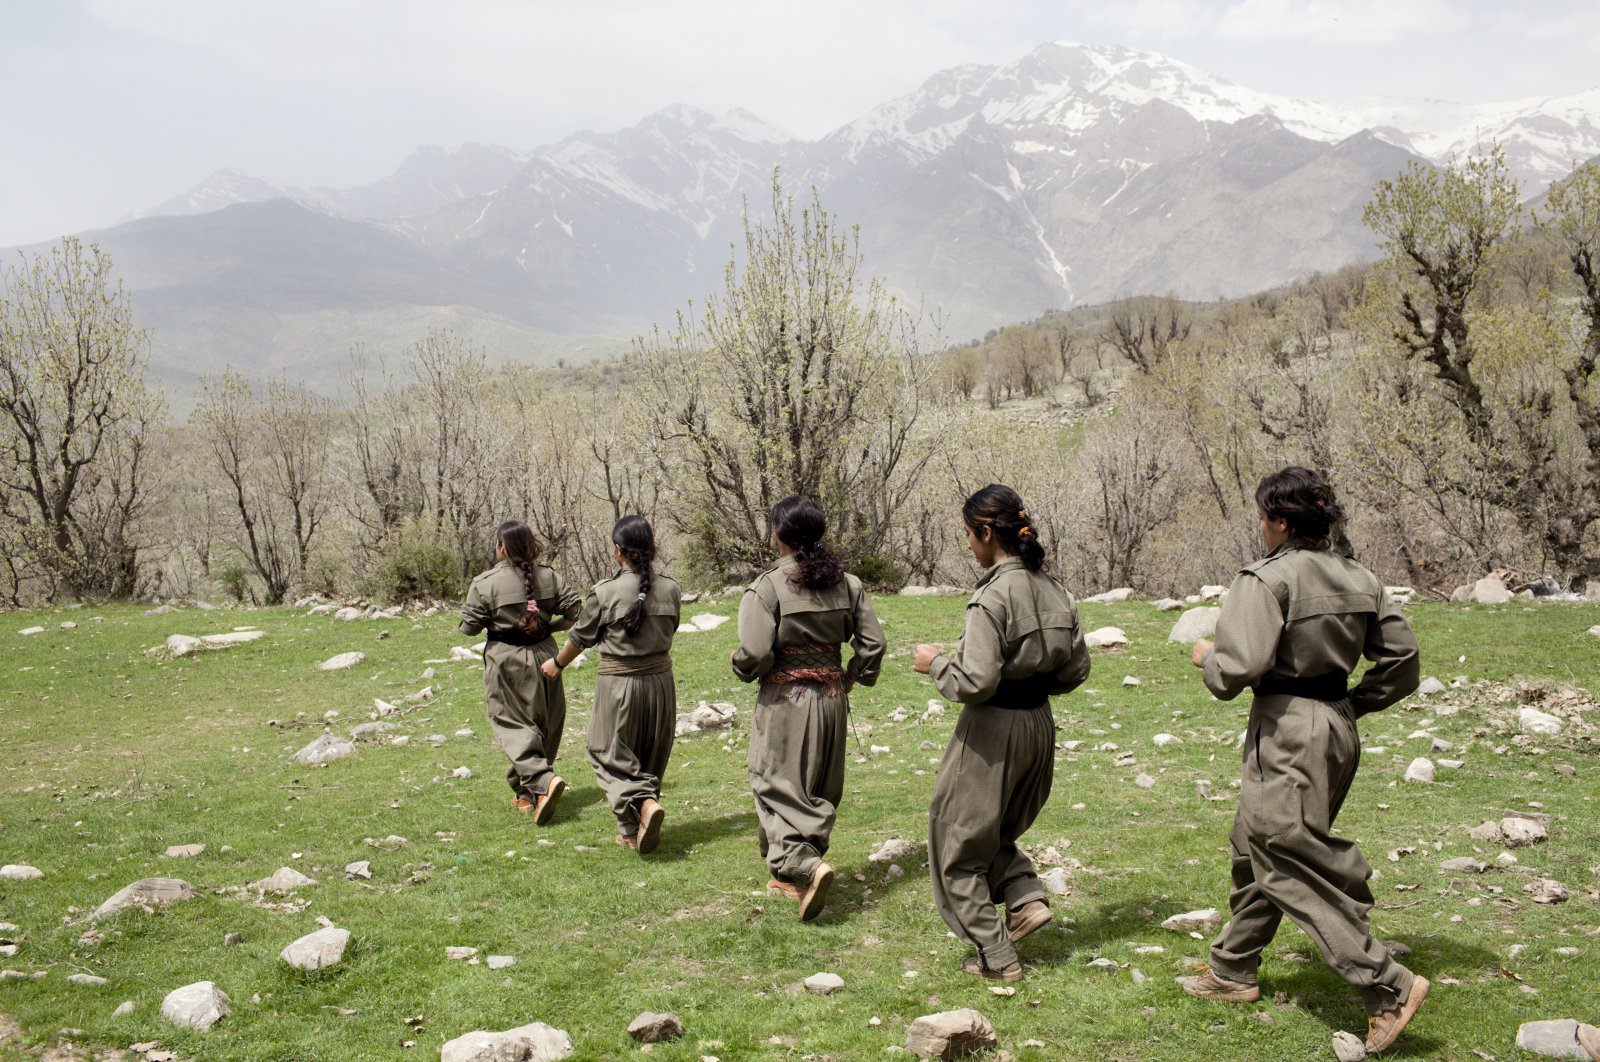 Female PKK terrorists in their camp situated in the mountains on the Iran-Iraq border, April 8, 2012. (Getty Images)